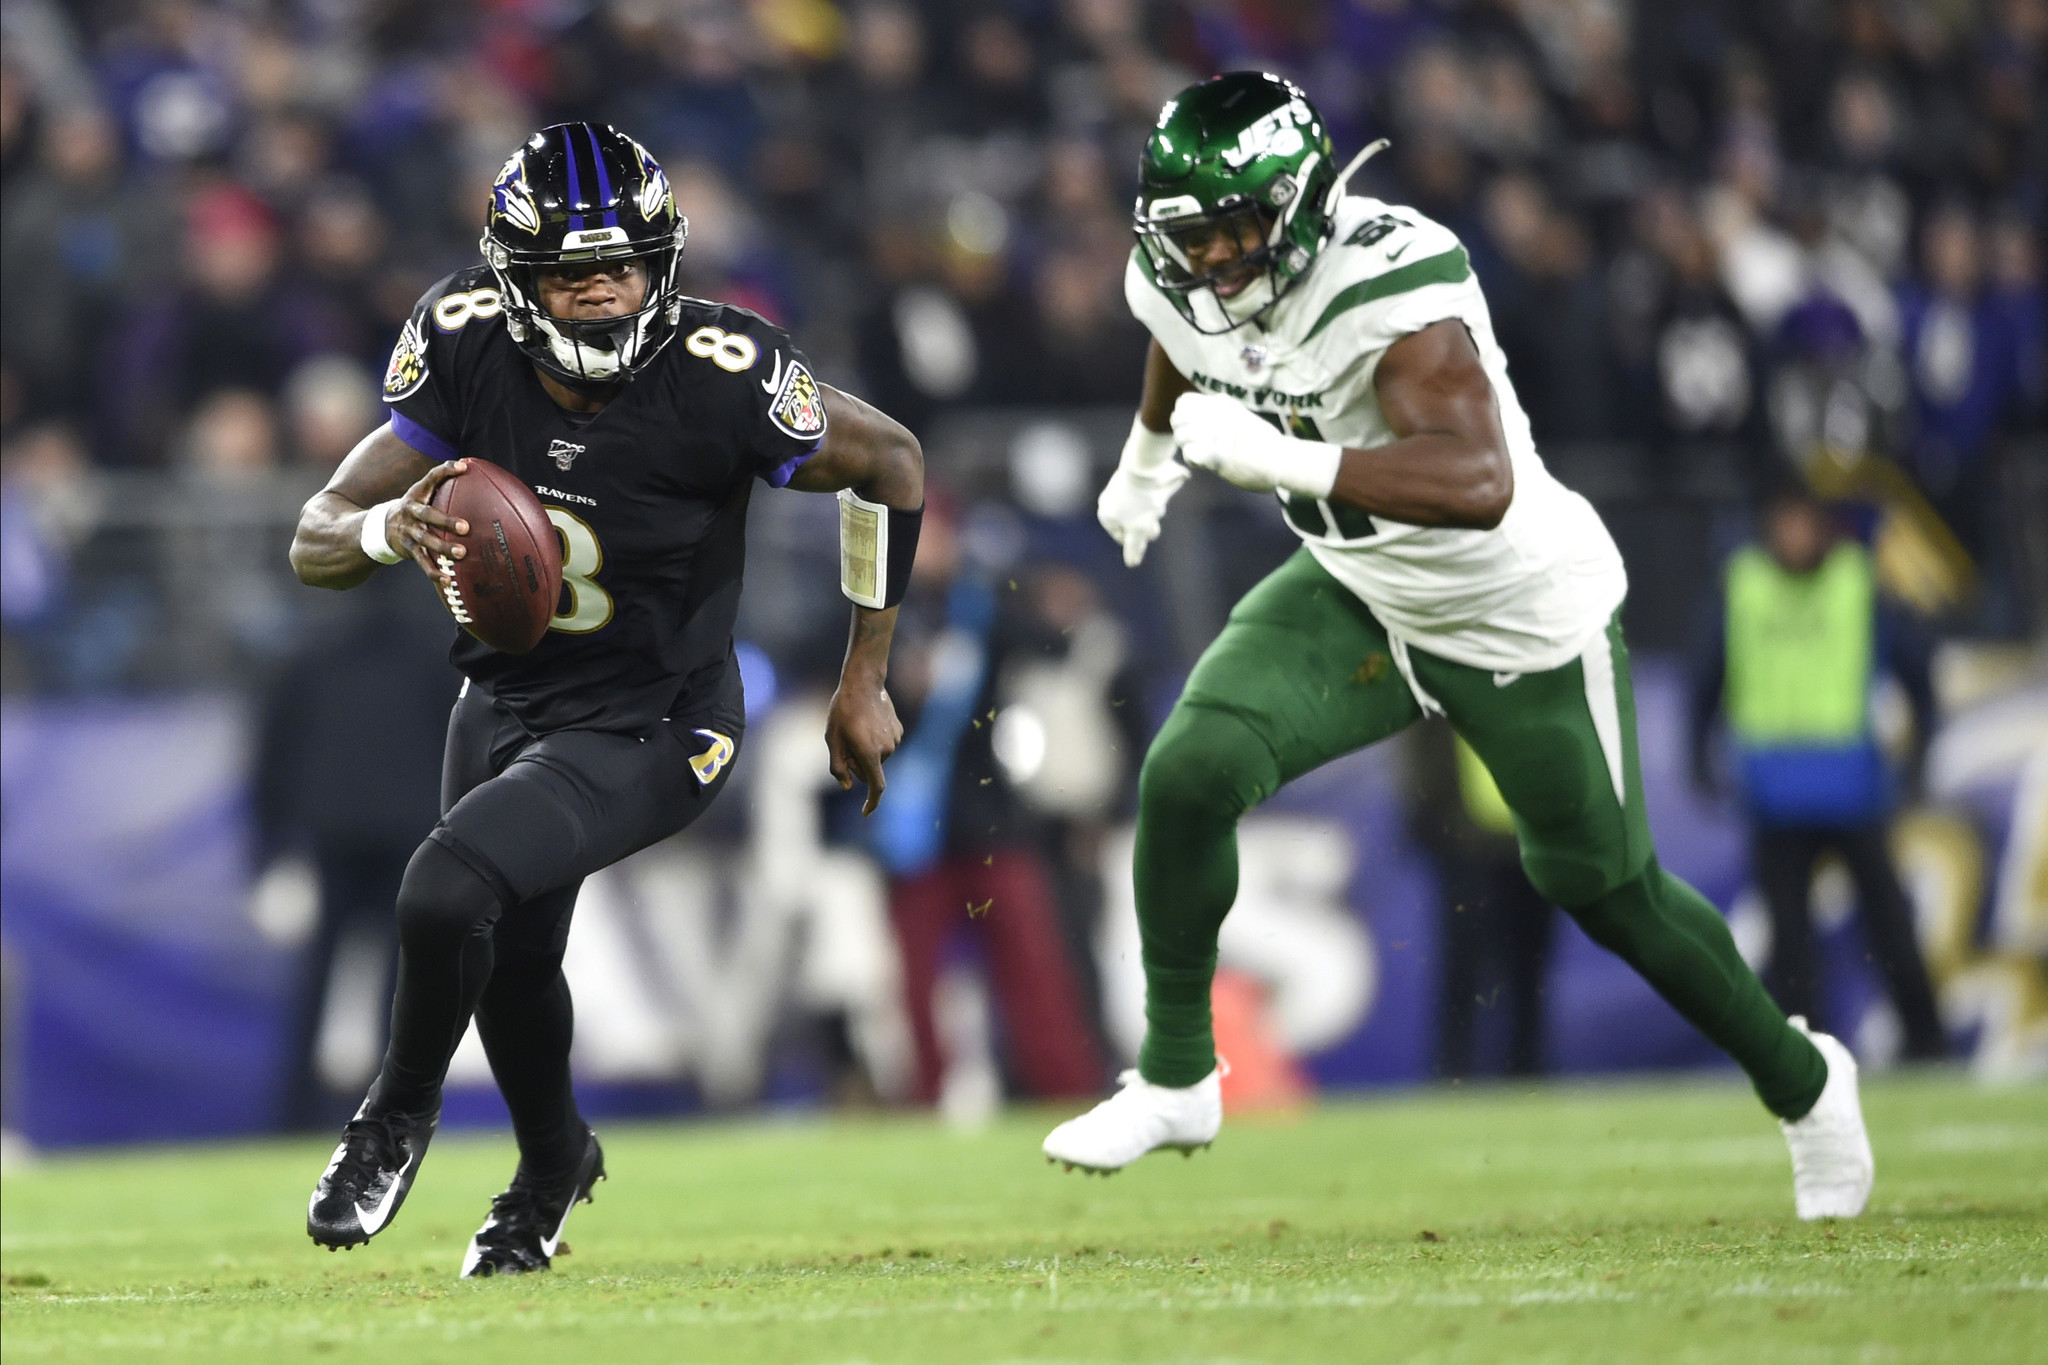 Lamar Jackson carves up the Jets, throws for 5 TDs in primetime laugher